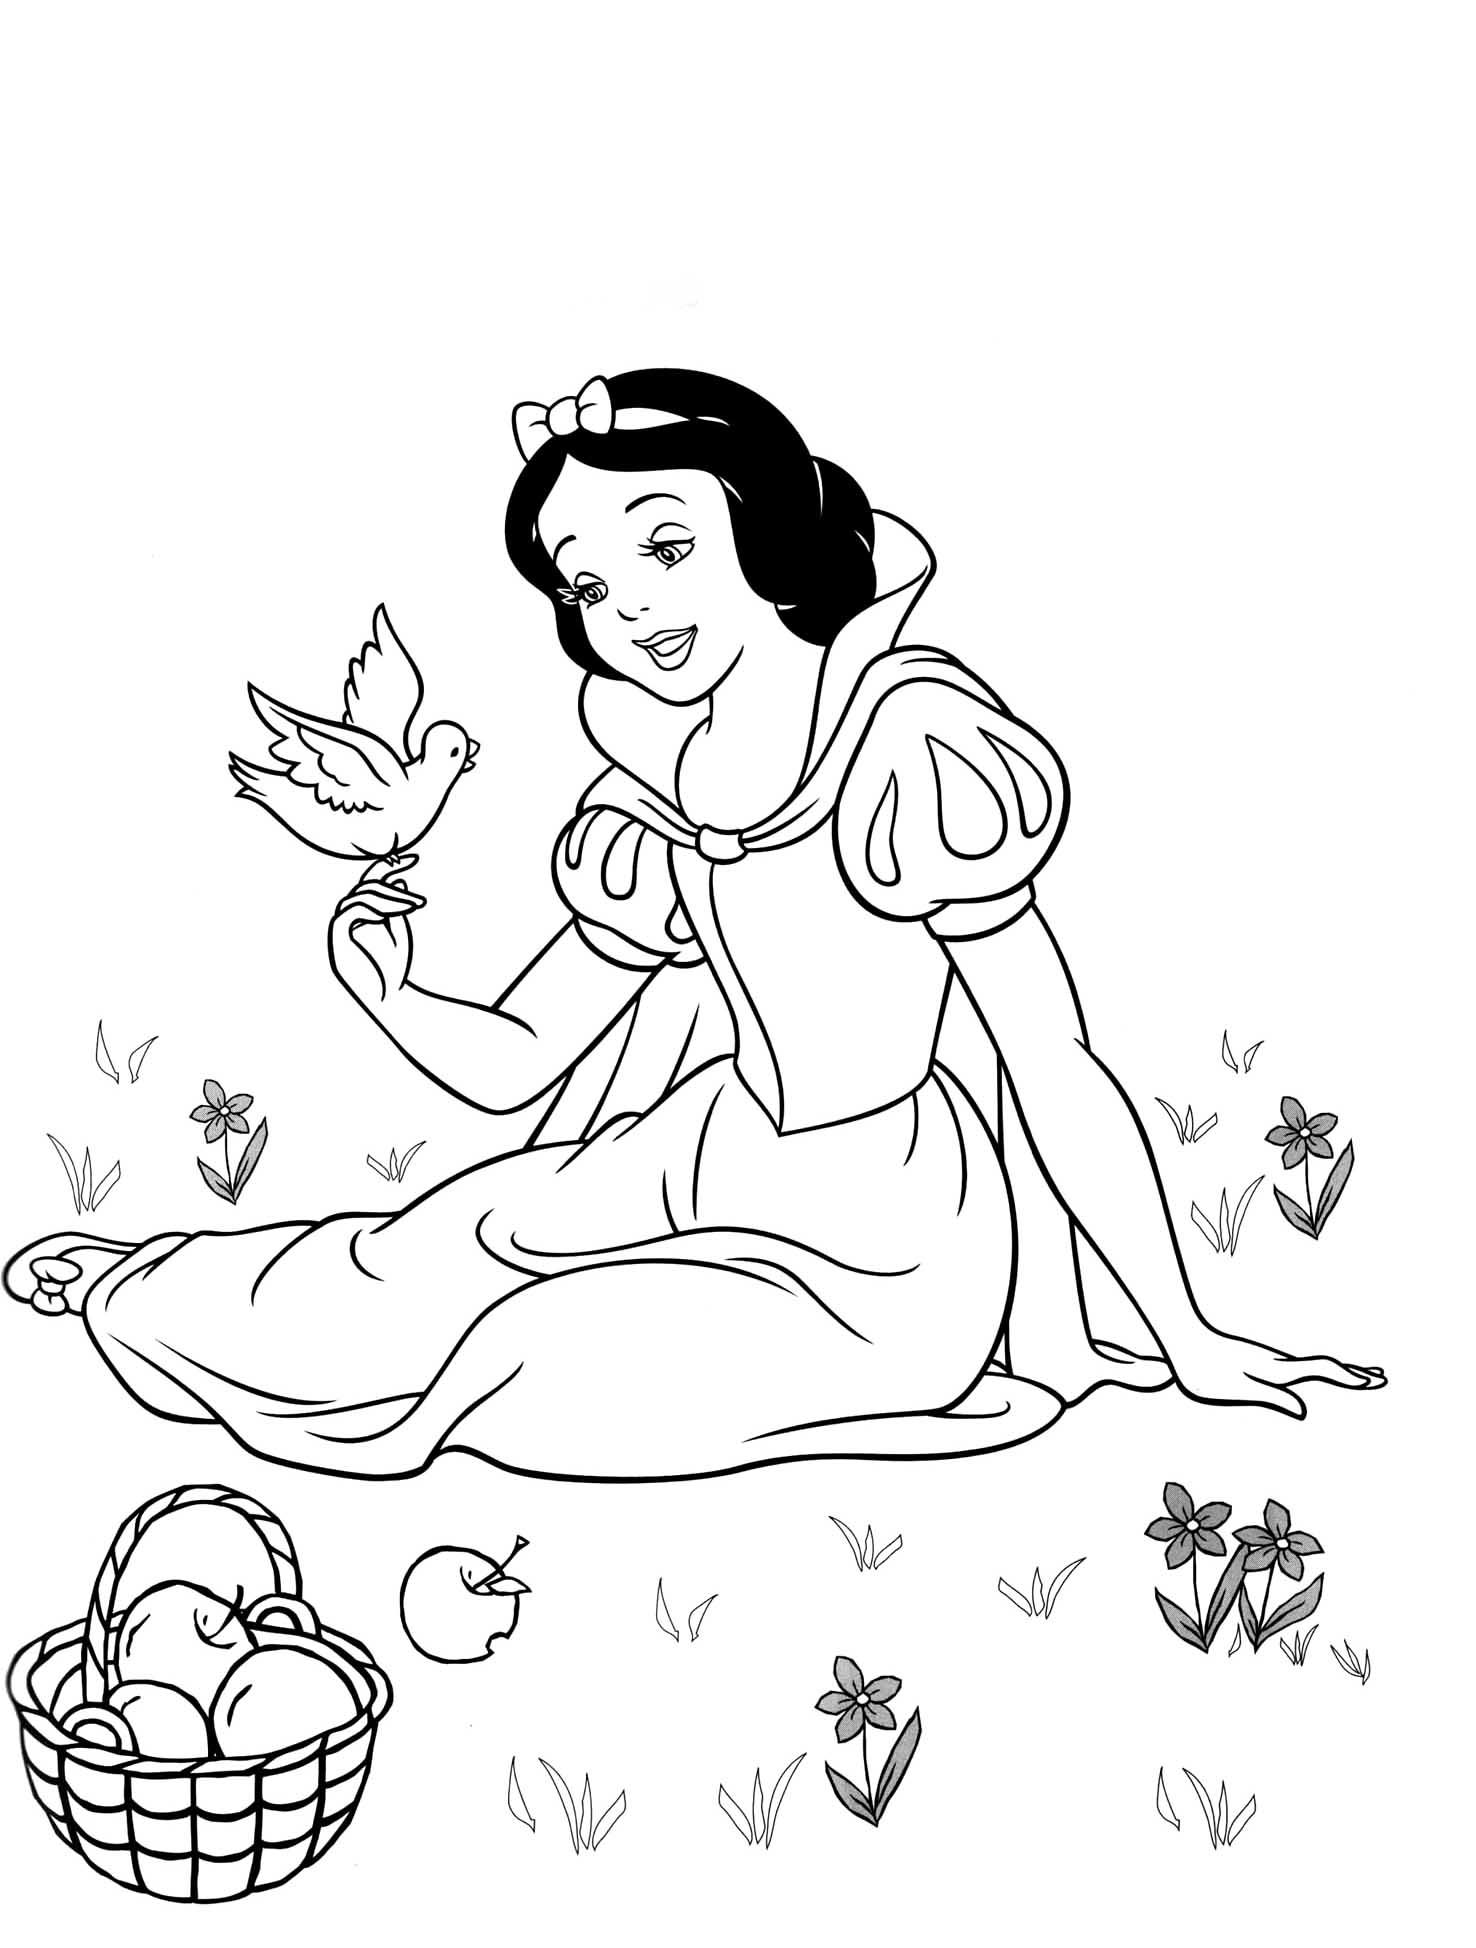 snpw white coloring pages - photo#30